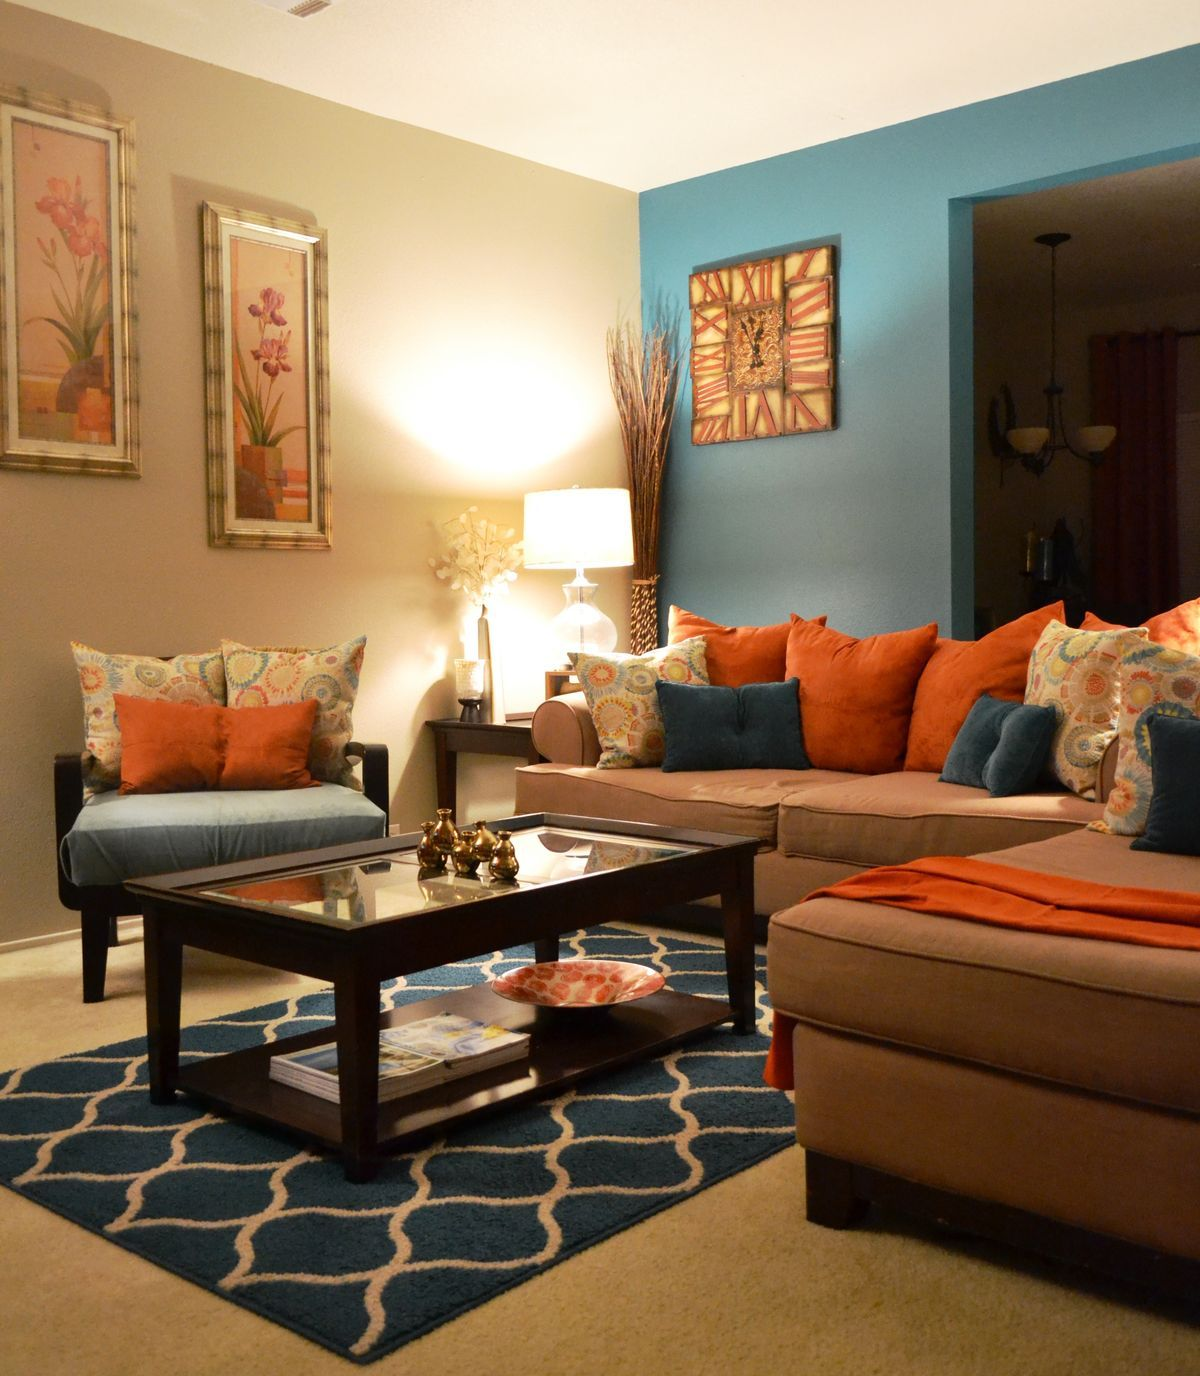 20 Ways To Decorate With Orange And Yellow: Pin By Correena Keil On New Apartment